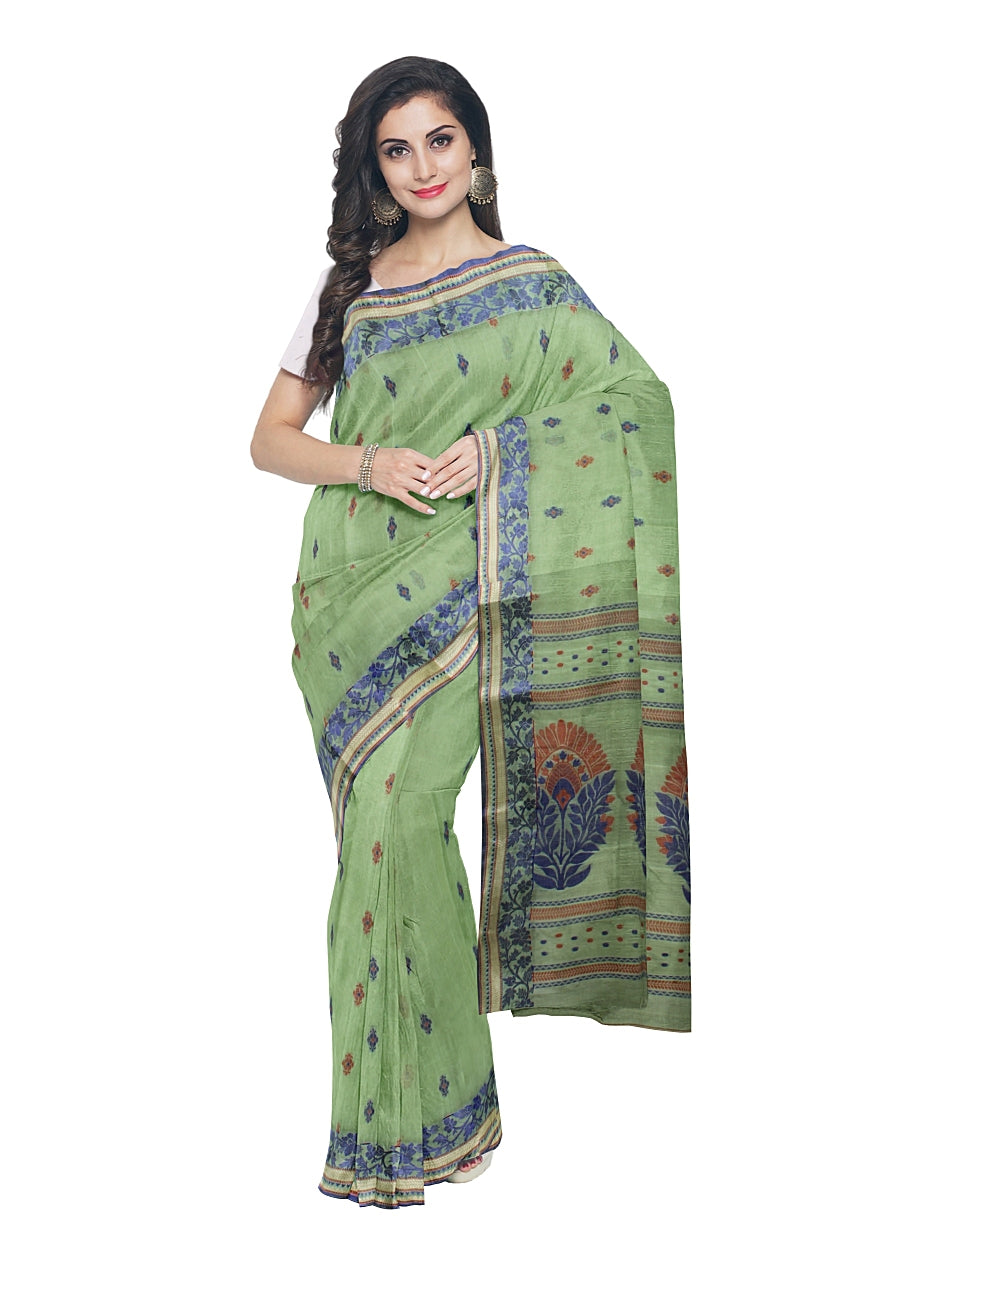 Bengal Handloom Light Green Cotton Tant Saree